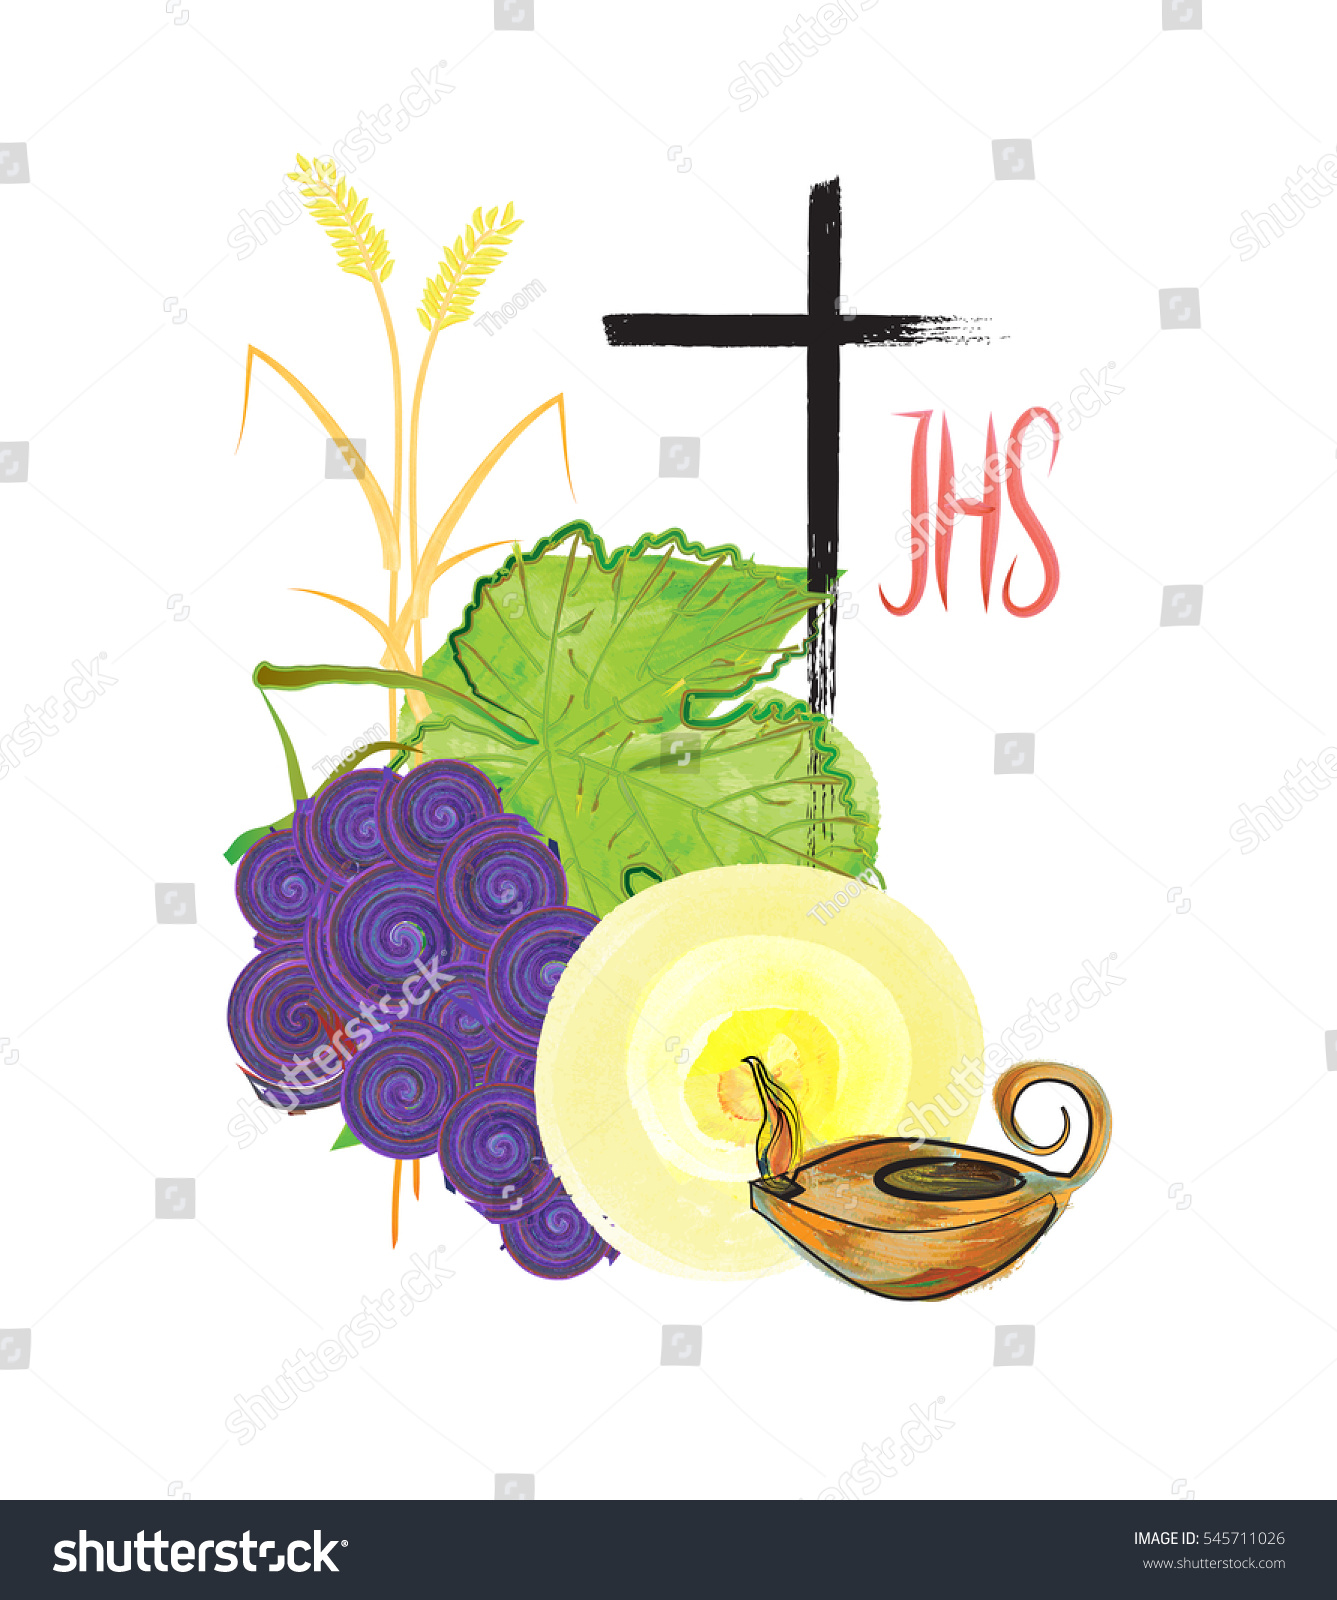 Eucharist Symbols Bread Wine Wheat Ears Stock Illustration 545711026